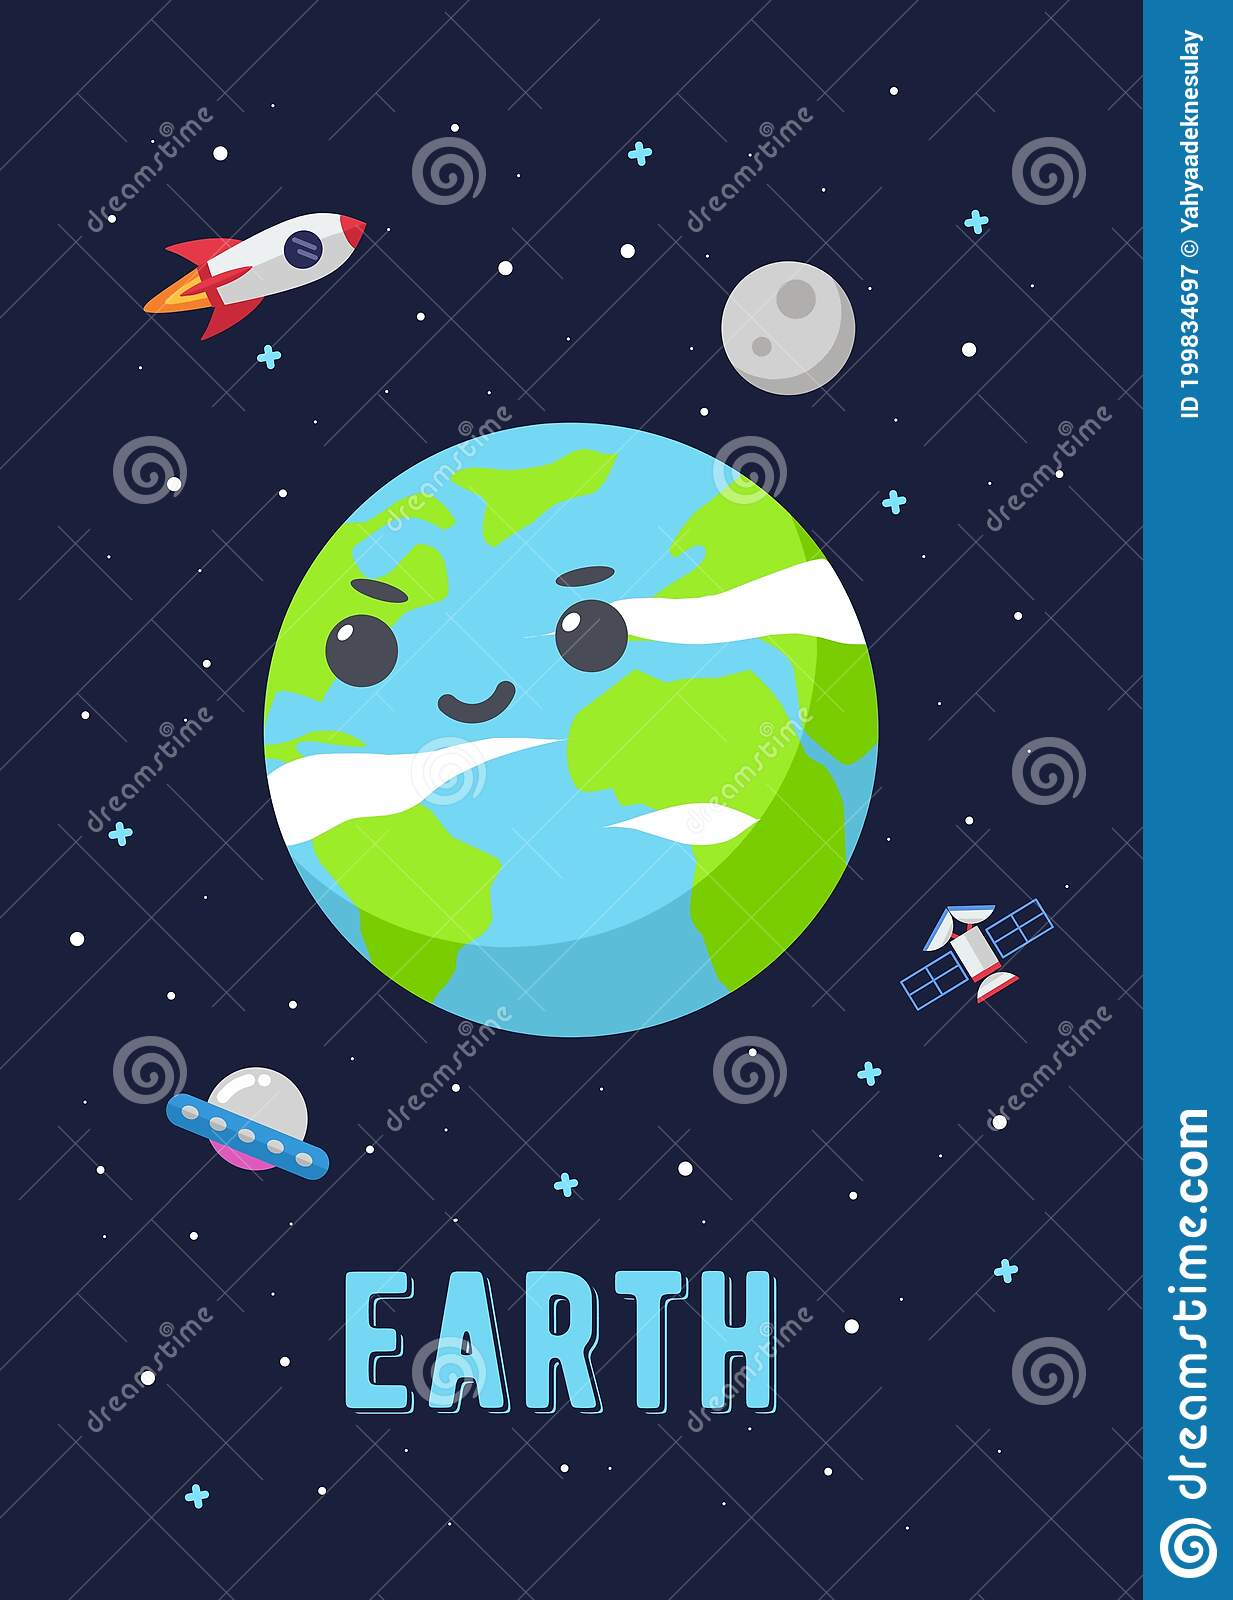 Cute Earth Cartoon : earth, cartoon, Earth, Planet, Design,, Illustration, Vector, Graphic, Planets, Cartoon, Style., Space, Kids., Stock, Christmas,, Graphic:, 199834697